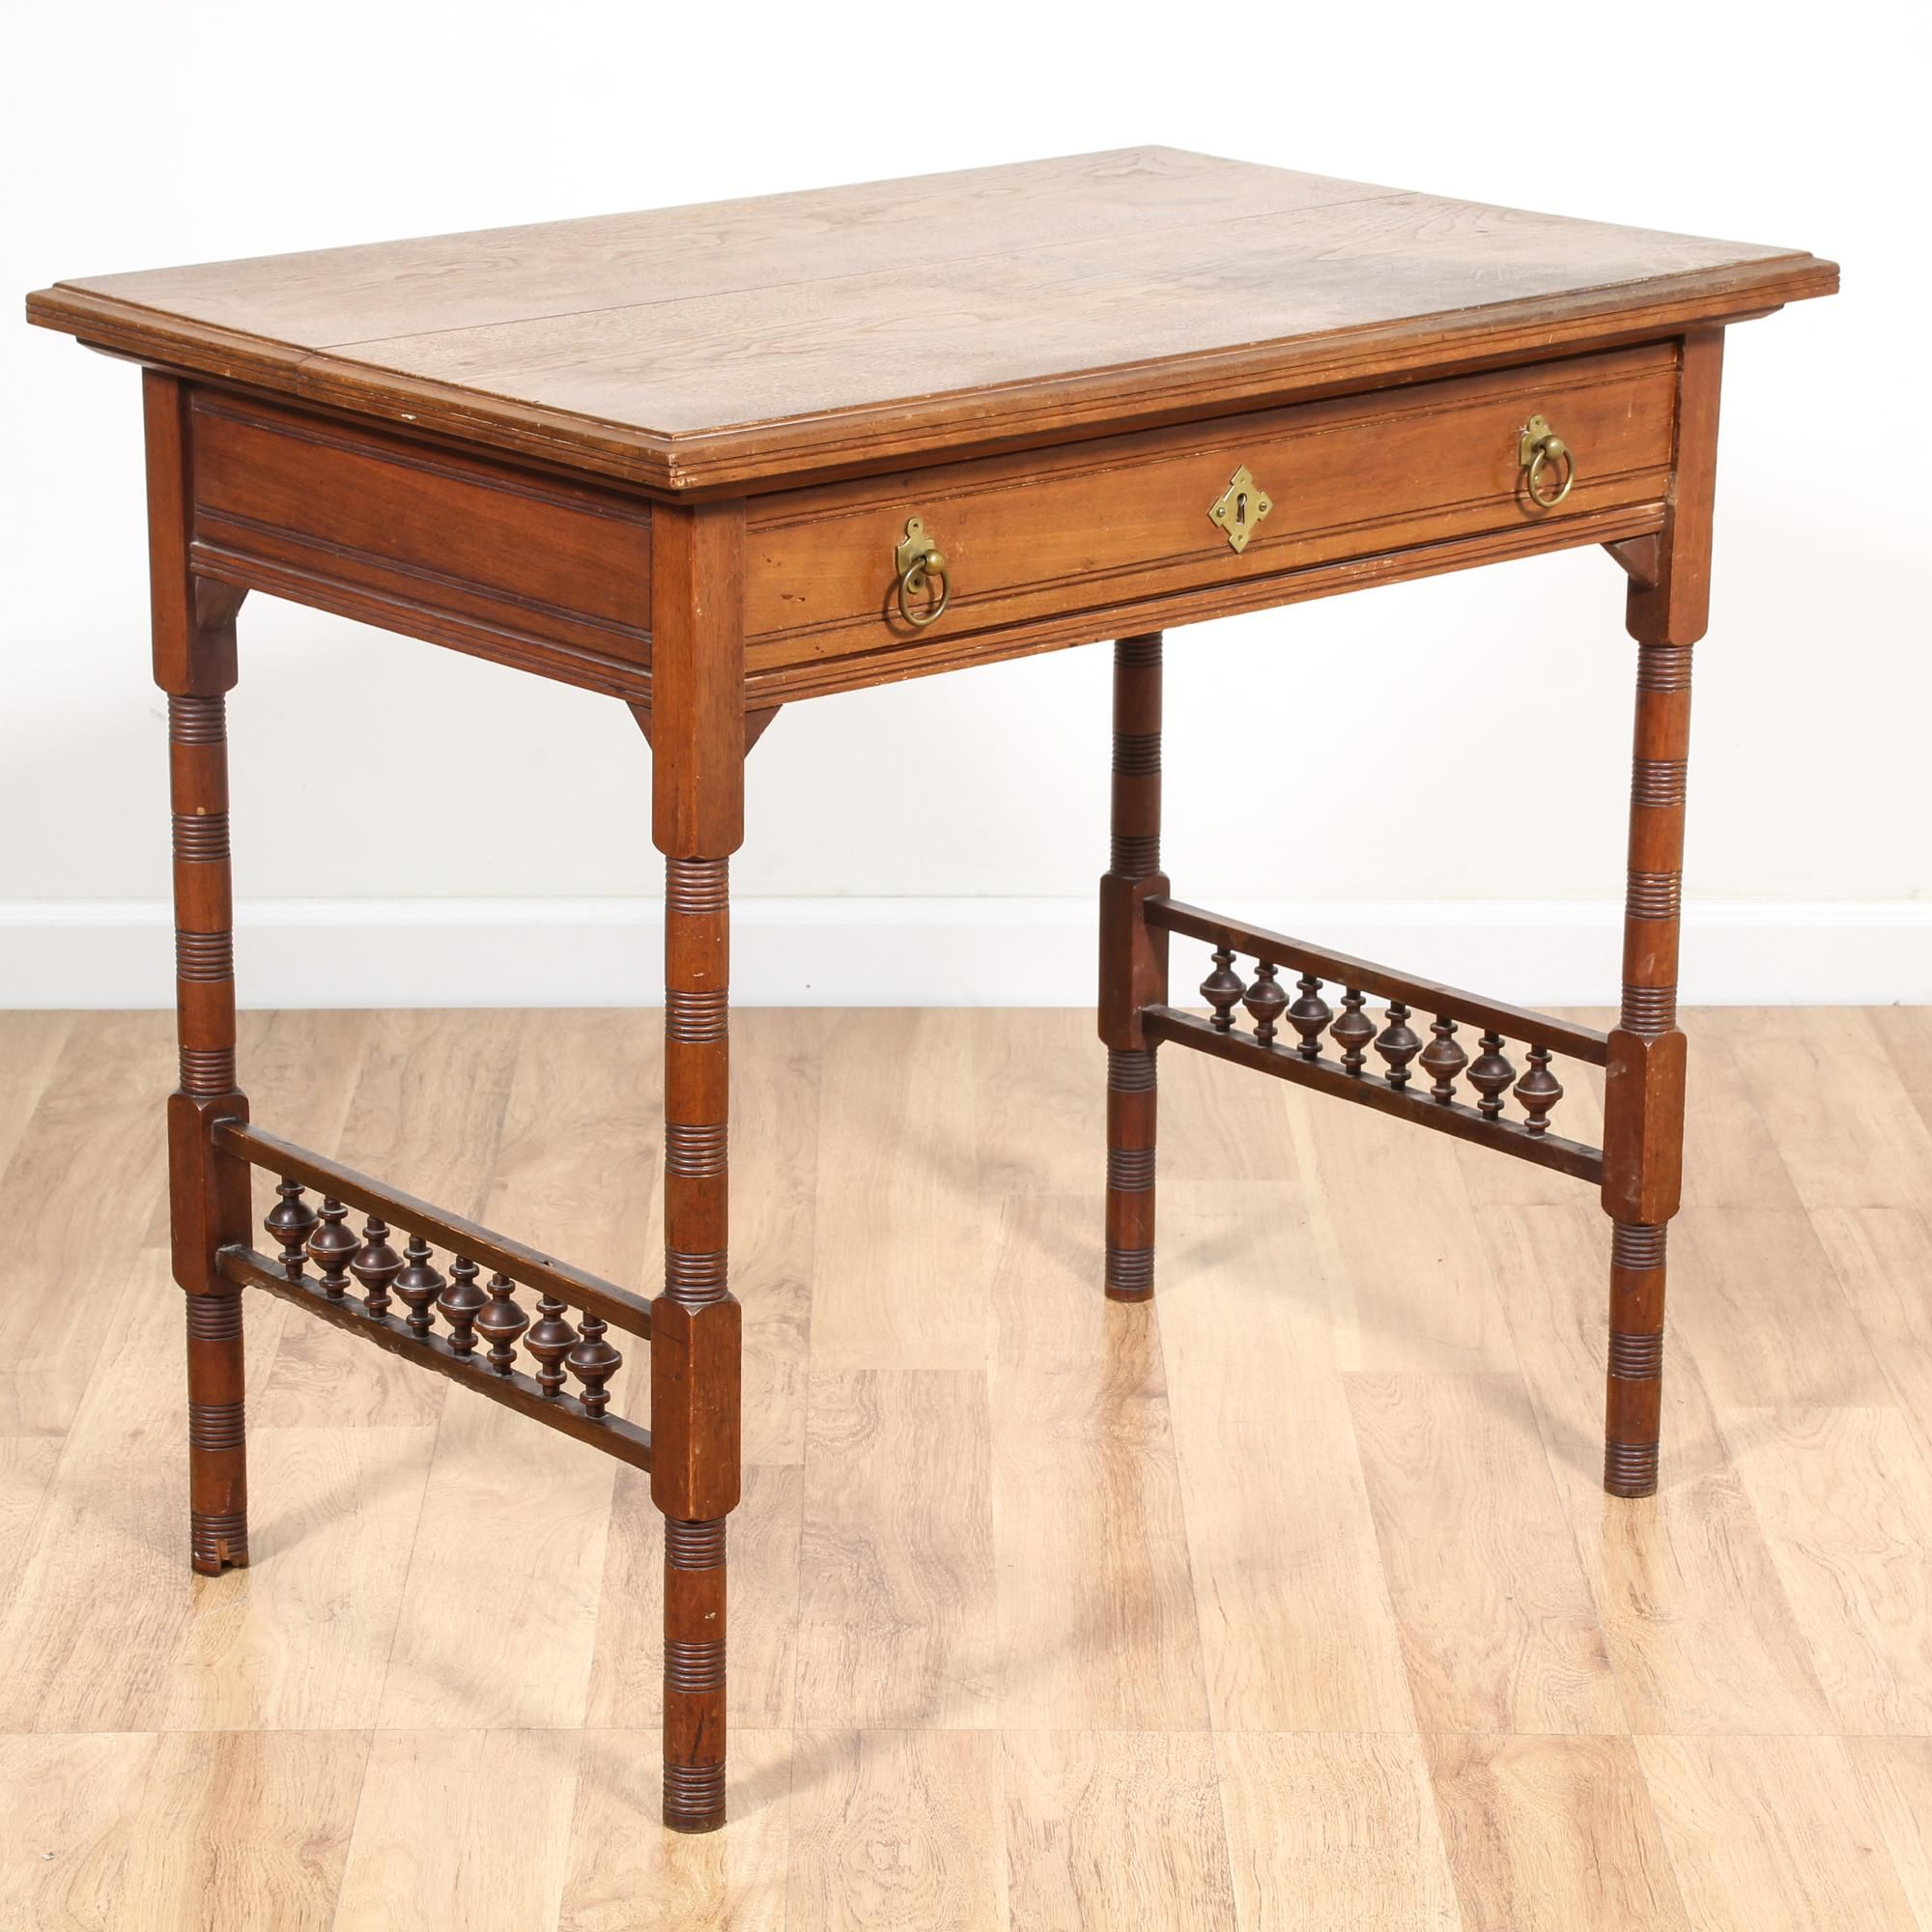 This Early Colonial Style Desk Is Featured In A Solid Wood With A Rustic Cherry Finish This Writing Desk Is Writing Table Desk Writing Table Small Workstation